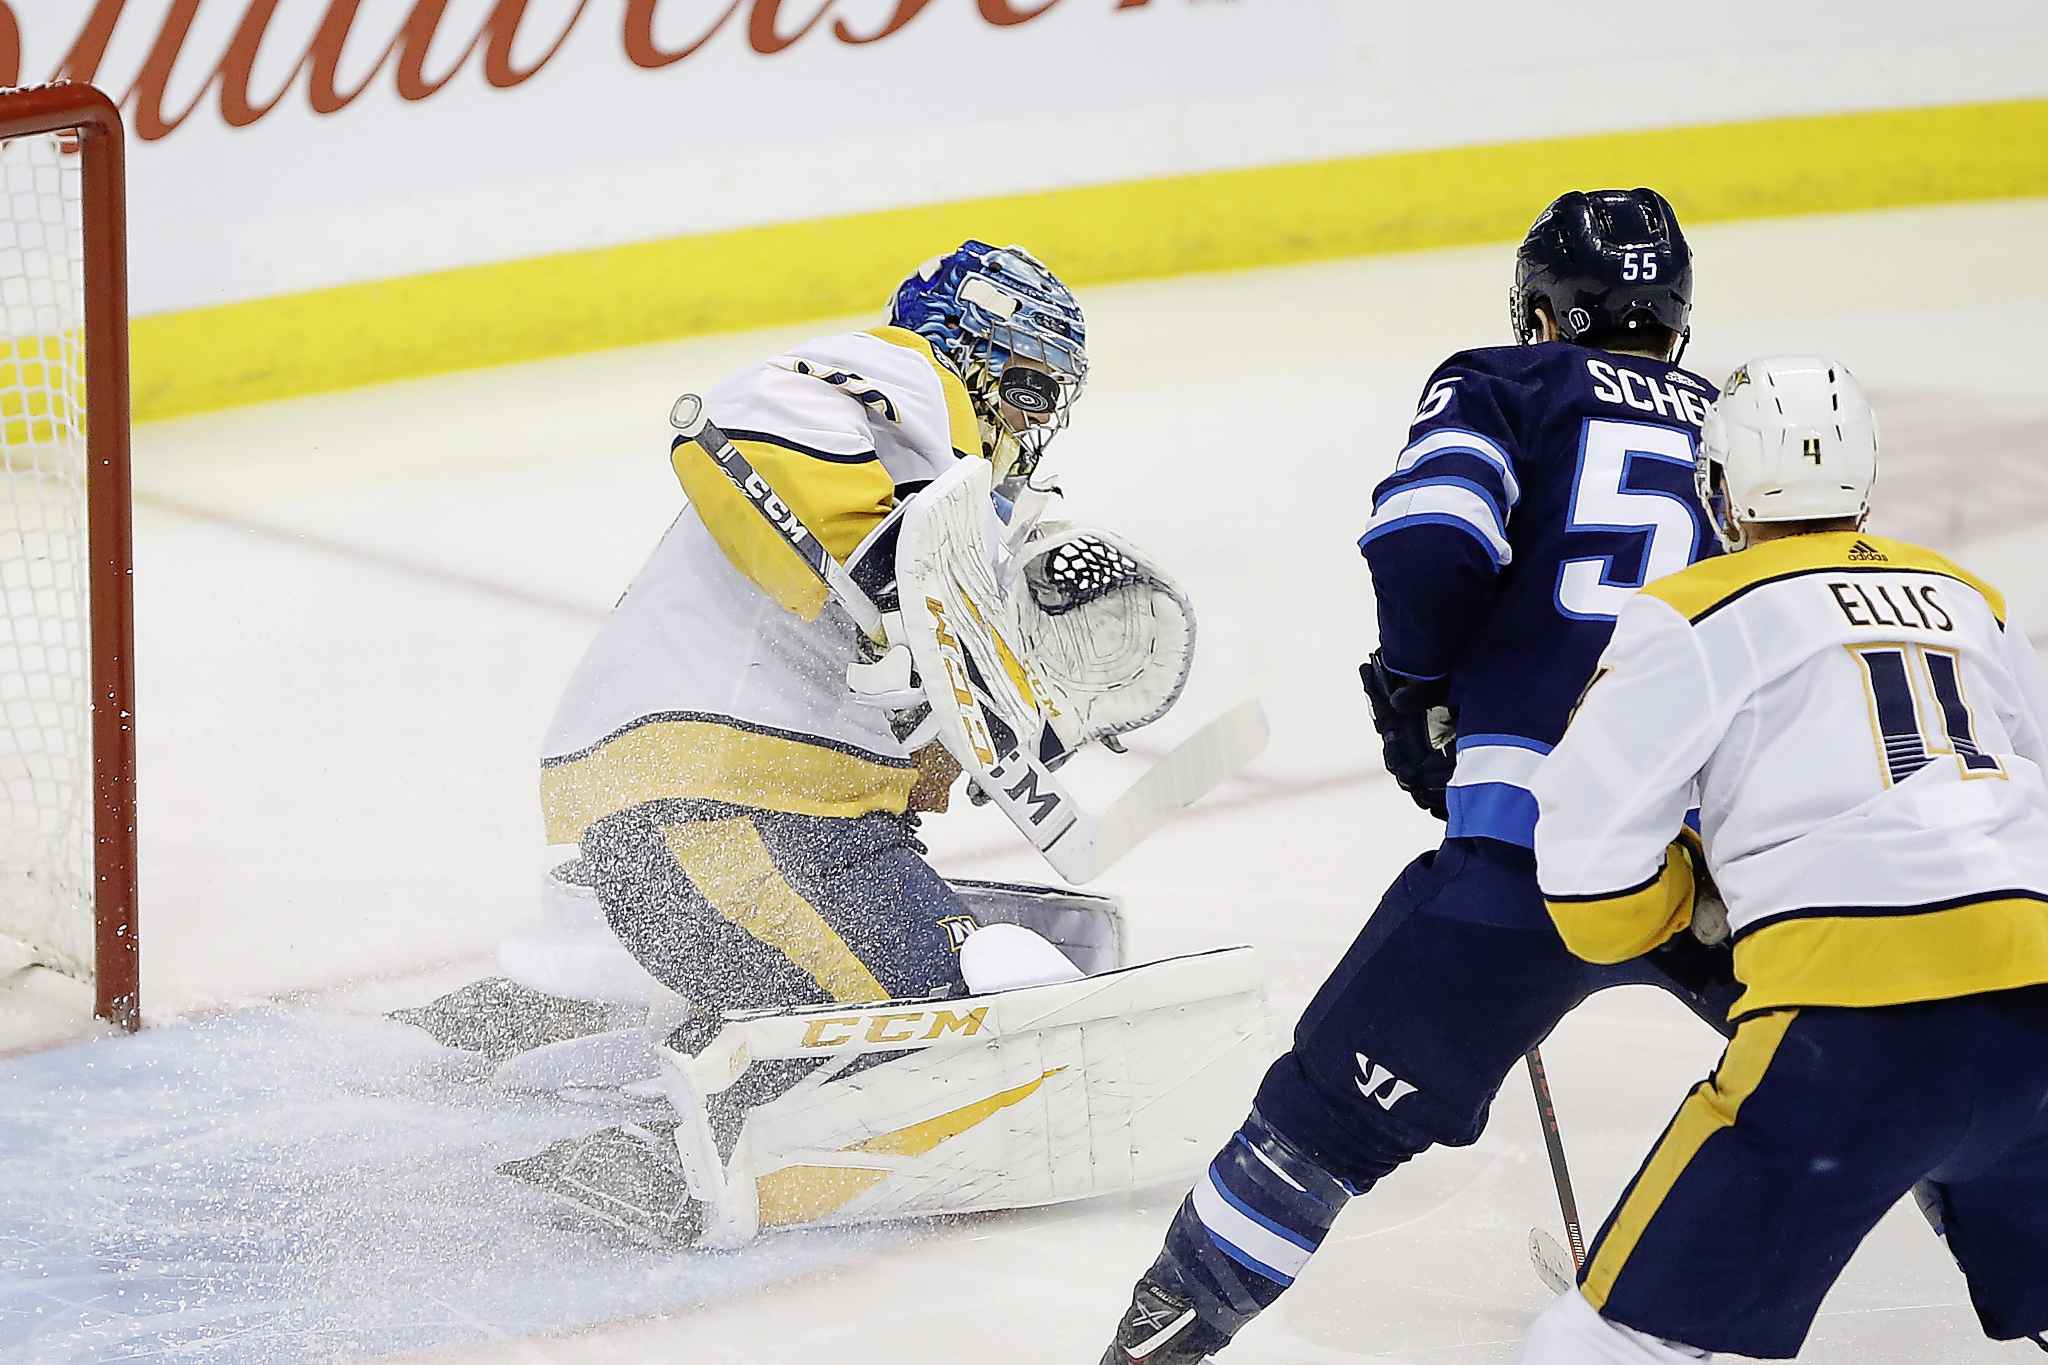 JOHN WOODS / THE CANADIAN PRESS</p> <p>Winnipeg Jets&#8217; Mark Scheifele (55) looks for the rebound off of Nashville Predators goaltender Pekka Rinne&#8217;s (35) mask as Ryan Ellis (4) defends during the first period.</p> <p>&#8220;></a><figcaption readability=